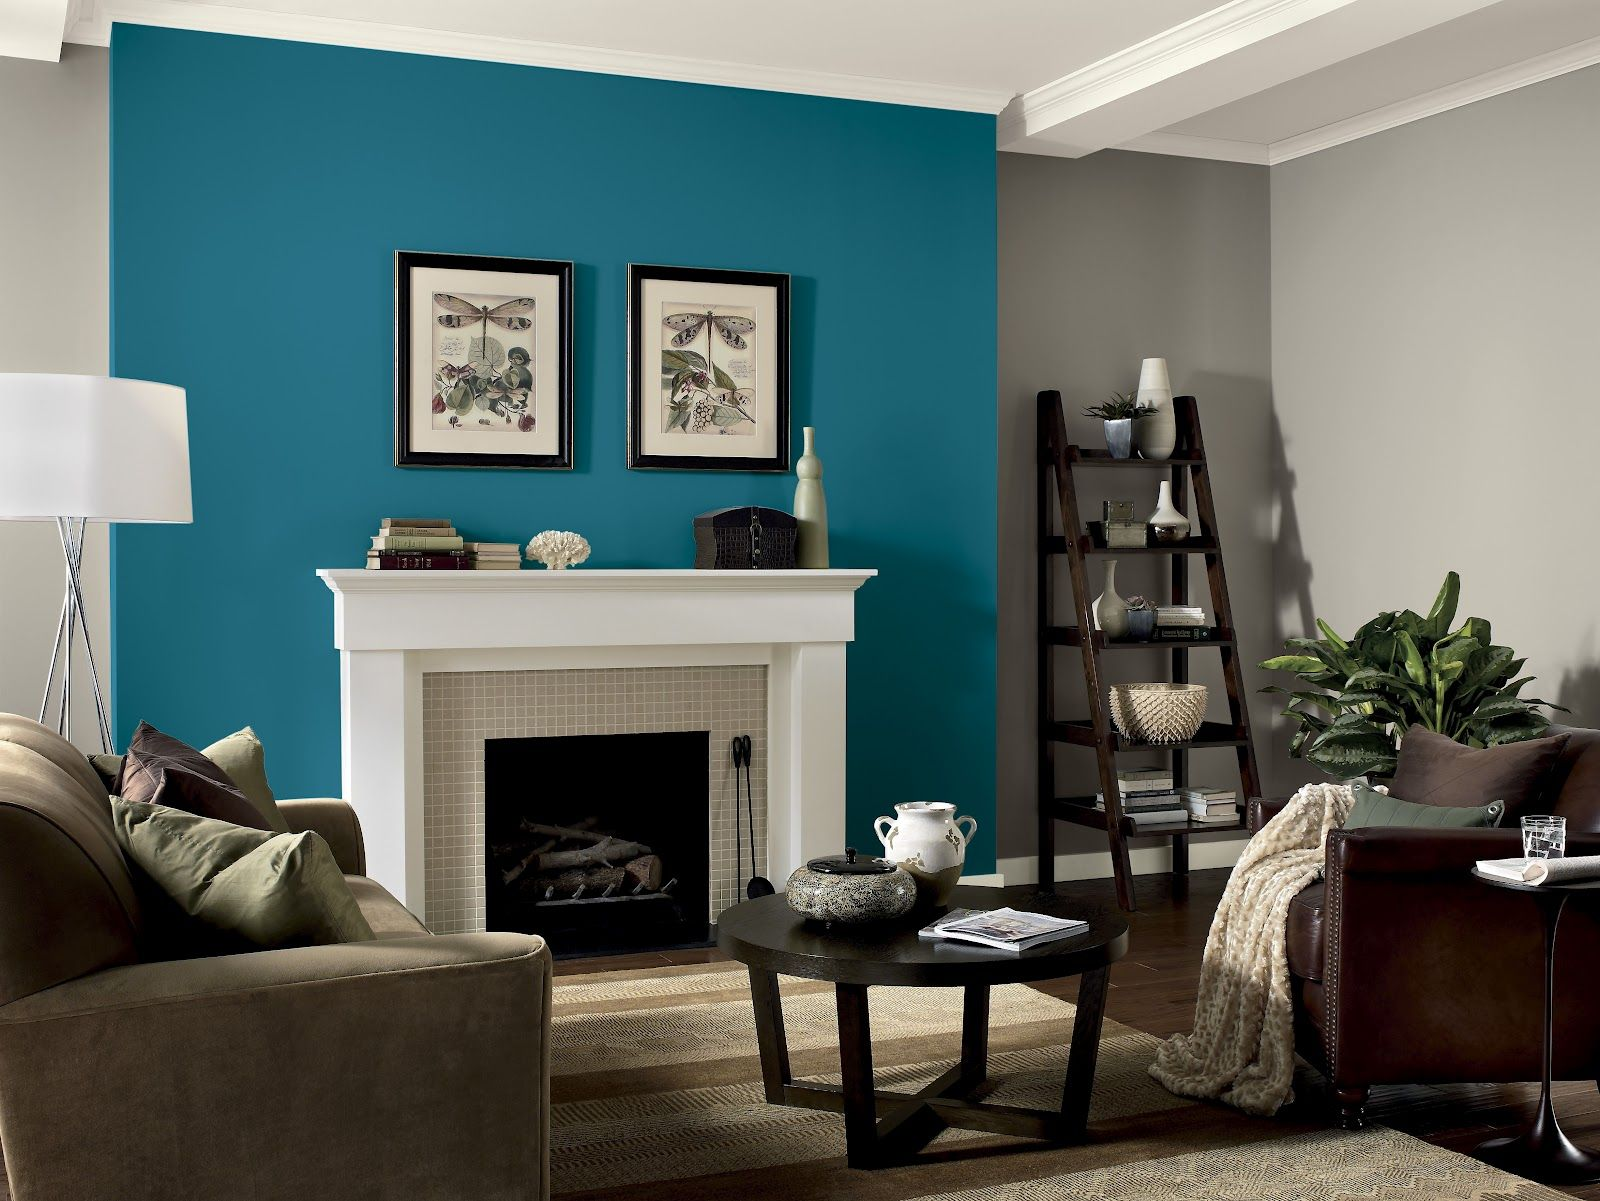 how to choose the right color palette for your home - http